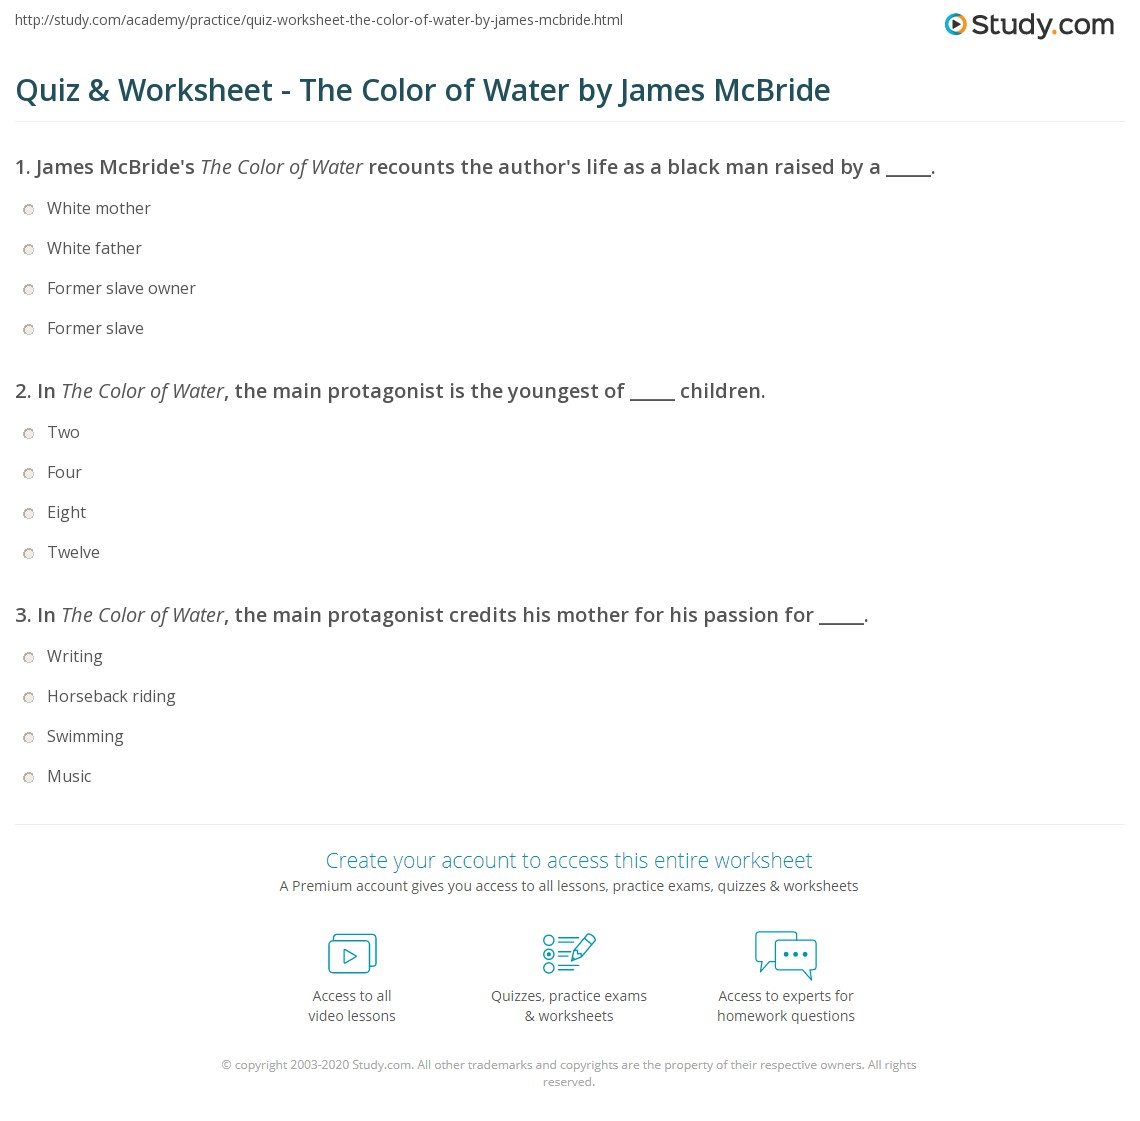 james mcbride the color of water essay essay the color of water james mcbride prezi essay the color of water james mcbride prezi